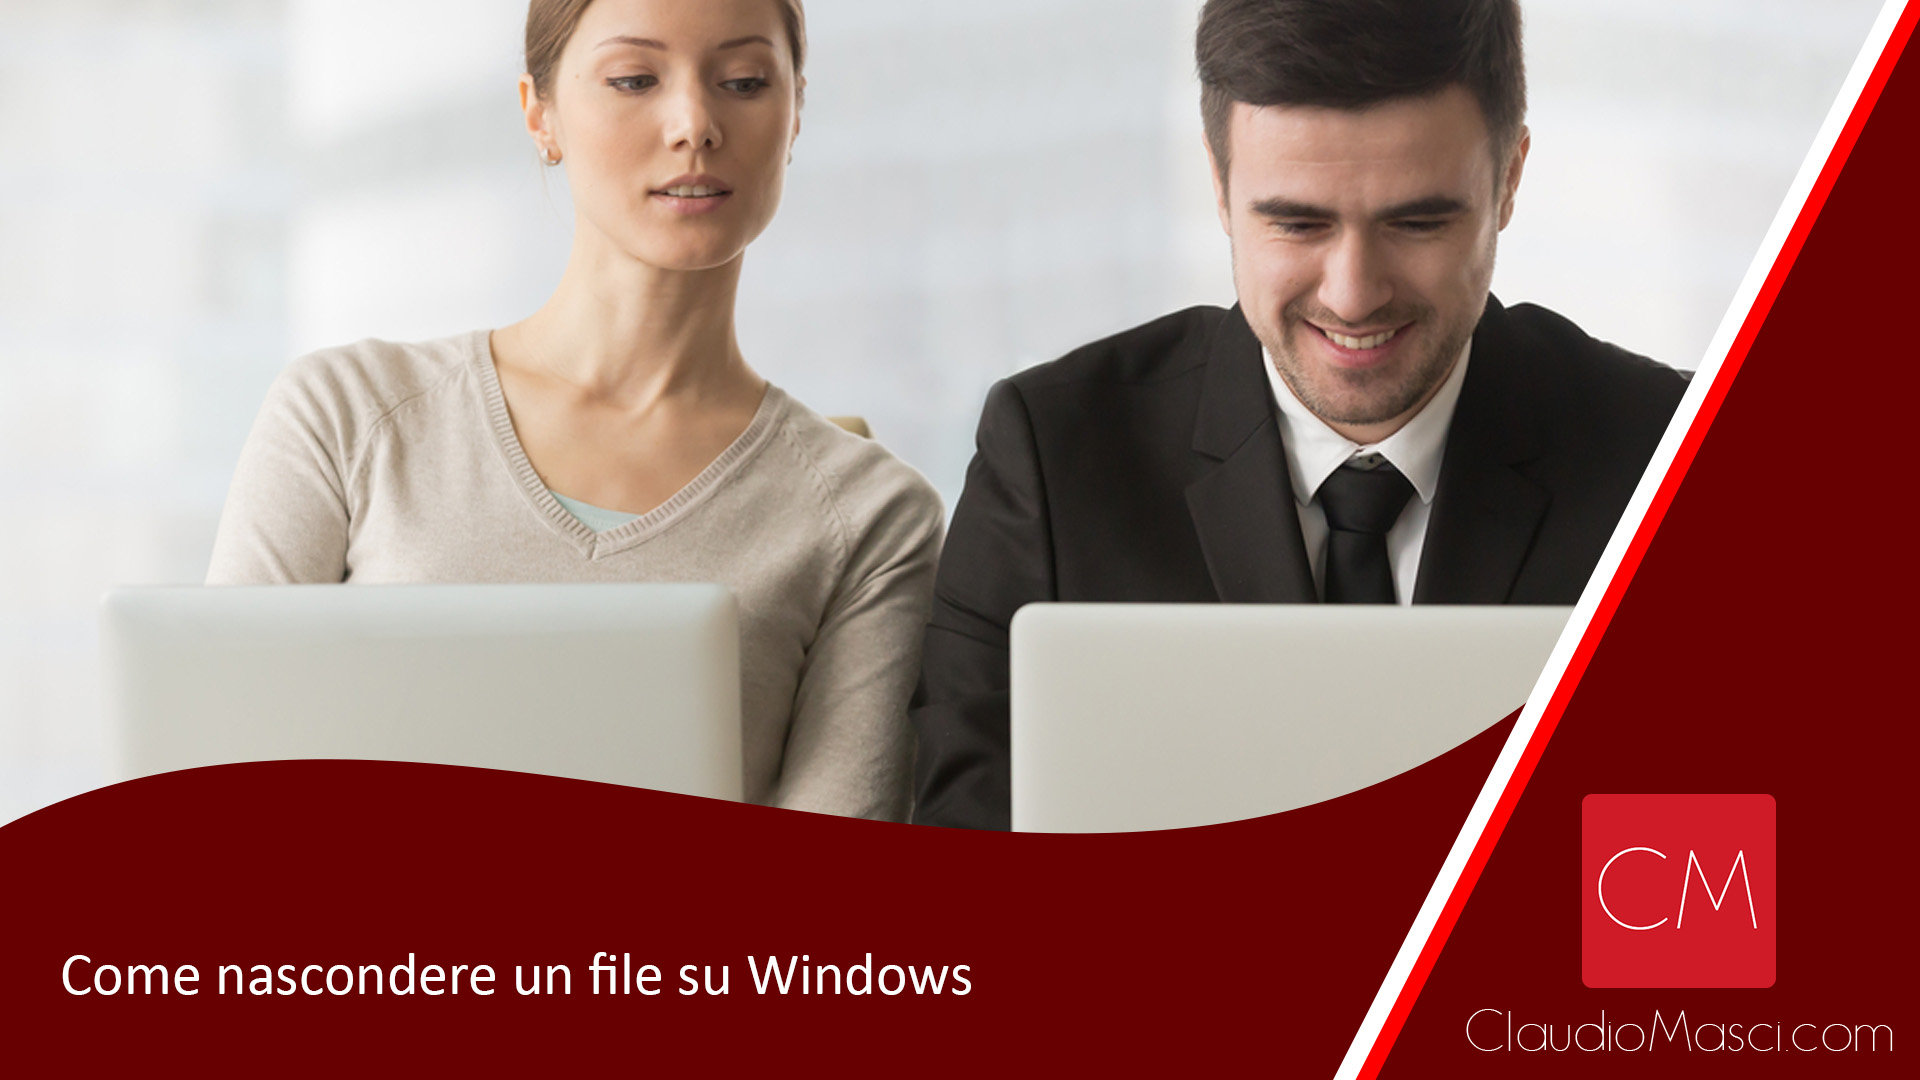 Come nascondere un file su Windows